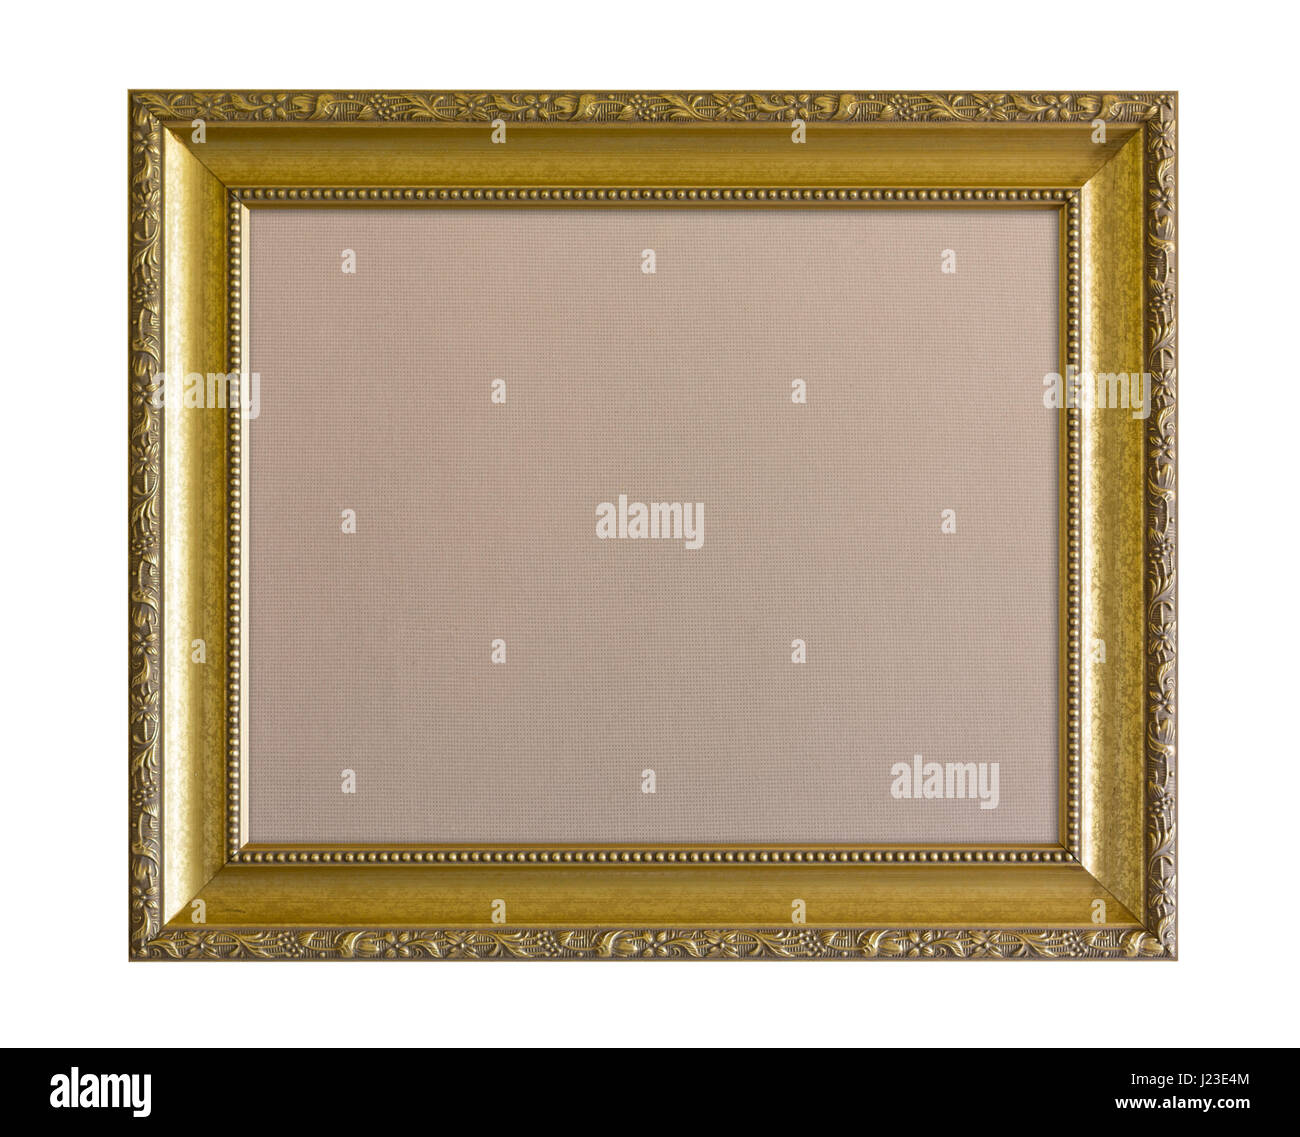 Ornate gold picture frame - Stock Image